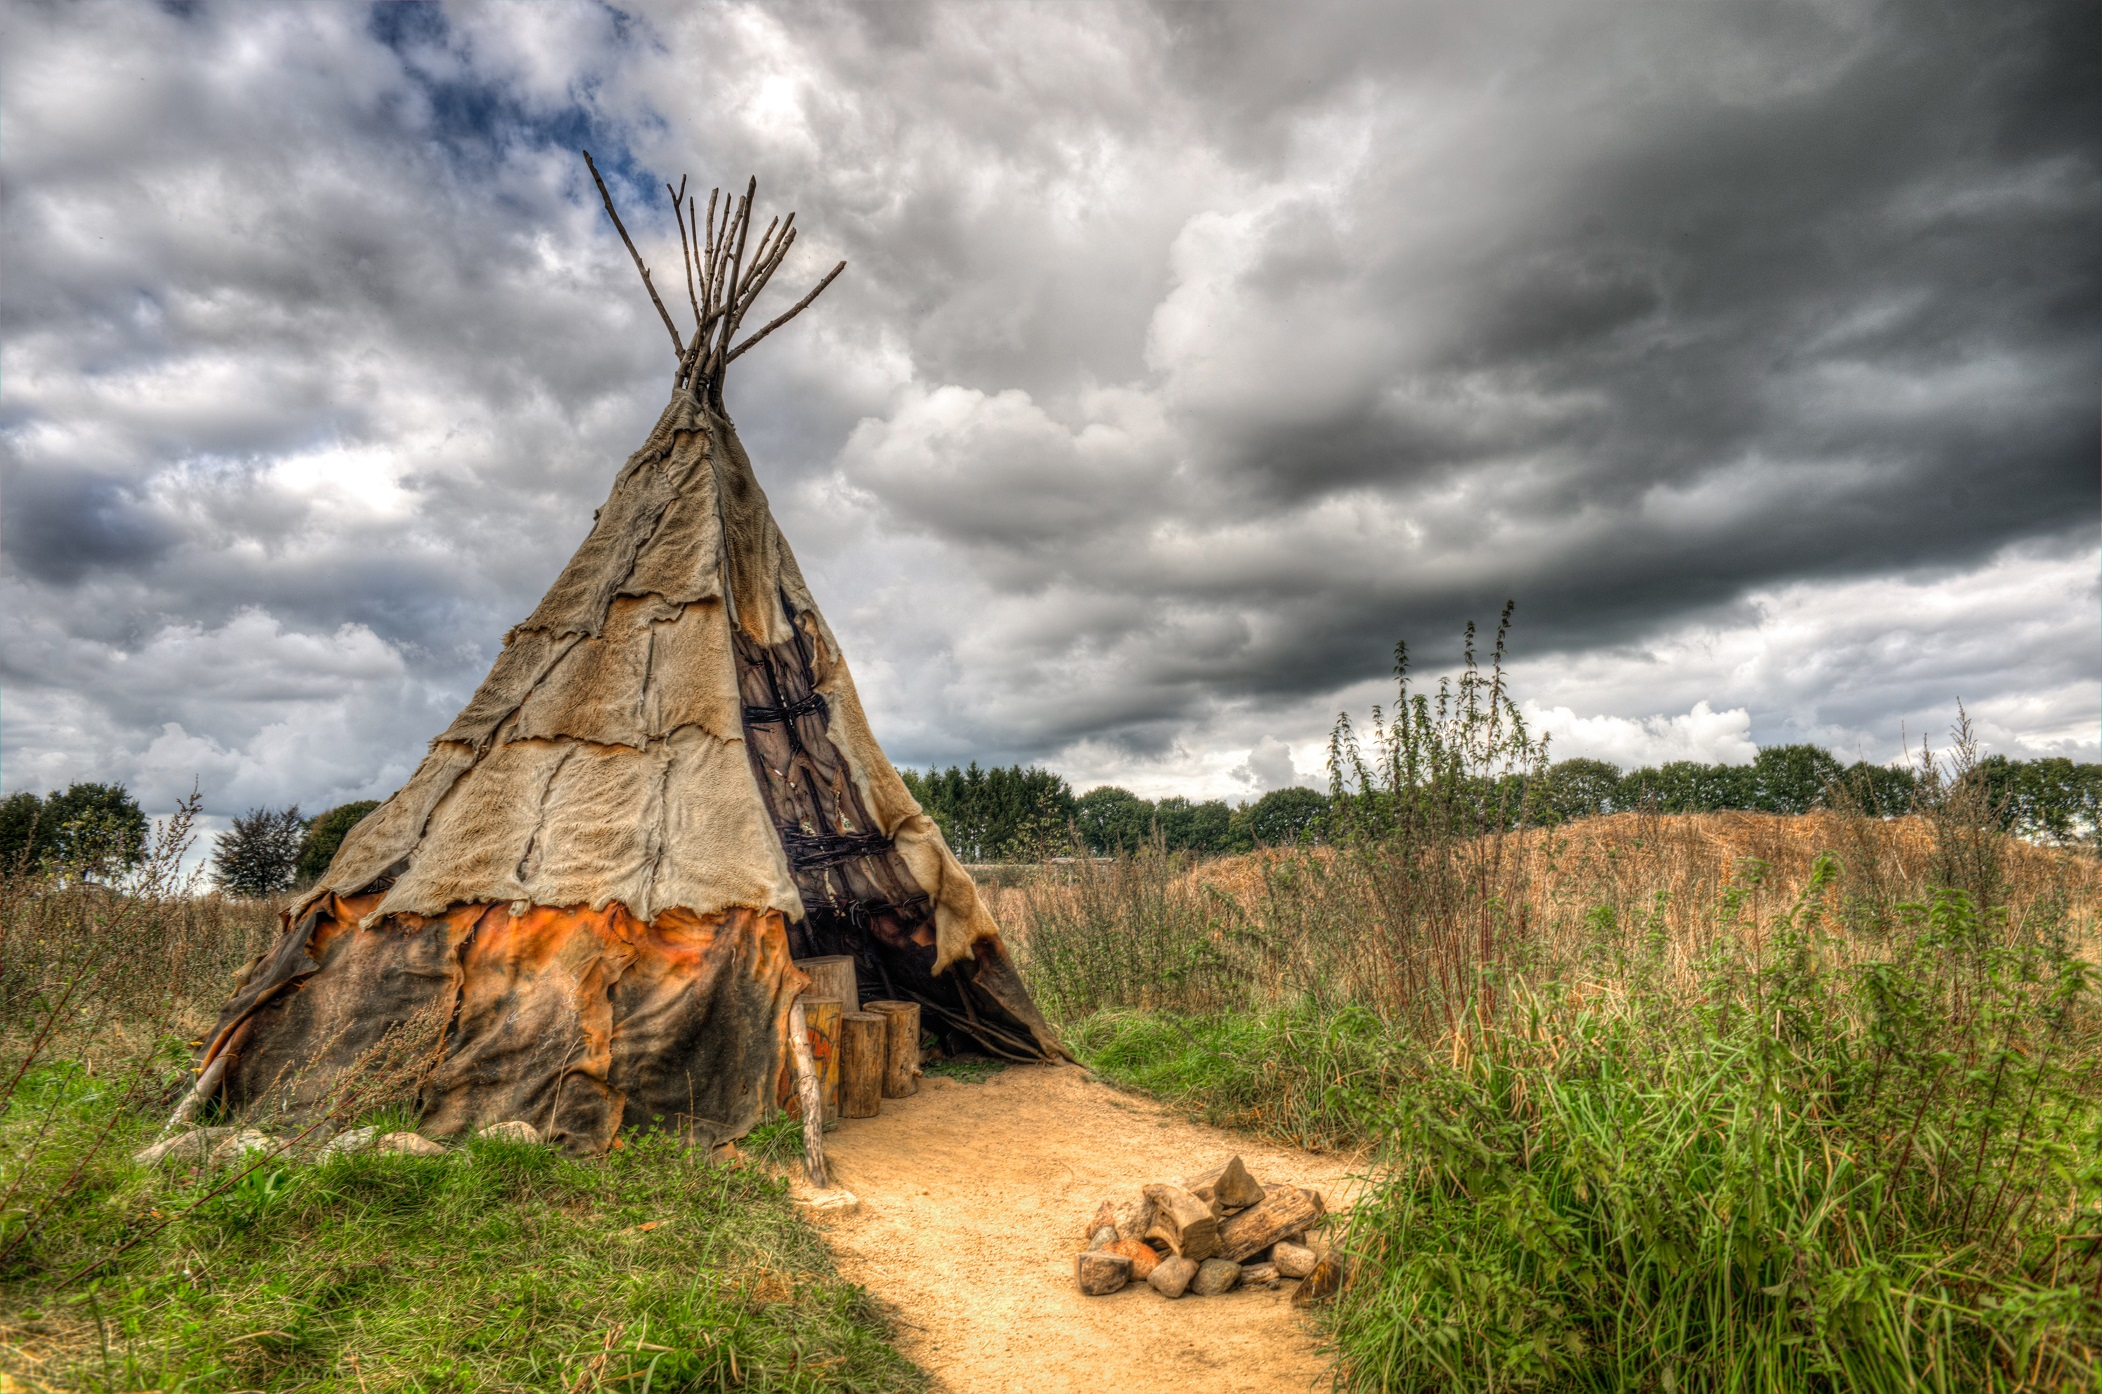 Man Made - Tipi Native American Cloud Tent HDR Wallpaper & Native American Tipi or teepee covered with animal skins Full HD ...